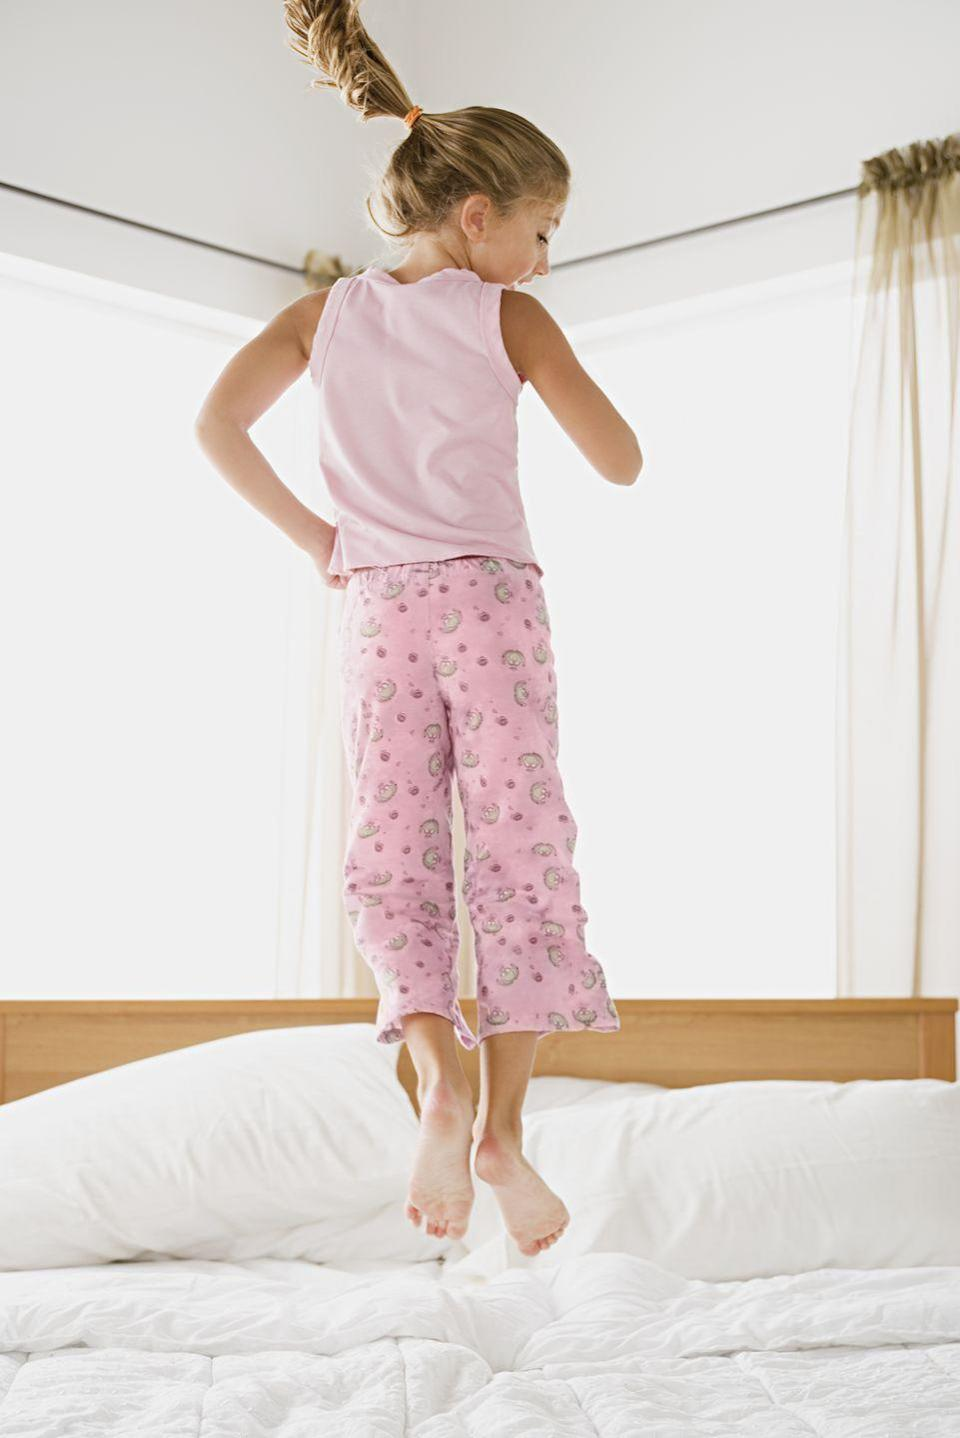 """<p>Your tween is likely bummed that she can't throw her epic sleepovers right now. But that's OK—a virtual birthday slumber party can also be pretty fun. With the help of a laptop or tablet, your tween and her friends can do their favorite spa activities, watch movies in sleeping bags with <a href=""""https://www.netflixparty.com/"""" rel=""""nofollow noopener"""" target=""""_blank"""" data-ylk=""""slk:Netflix Party"""" class=""""link rapid-noclick-resp"""">Netflix Party</a>, and play online games like <a href=""""https://www.jackboxgames.com/drawful-two/"""" rel=""""nofollow noopener"""" target=""""_blank"""" data-ylk=""""slk:Drawful 2"""" class=""""link rapid-noclick-resp"""">Drawful 2</a>, in which each player gets a drawing prompt to scribble onto a device and the other players try to guess what they are. In other words: a game that guarantees giggles.</p><p><a class=""""link rapid-noclick-resp"""" href=""""https://www.amazon.com/PJ-Salvage-Kids-Toddler-Unicorn/dp/B07HYH51ZC/?tag=syn-yahoo-20&ascsubtag=%5Bartid%7C10072.g.32466287%5Bsrc%7Cyahoo-us"""" rel=""""nofollow noopener"""" target=""""_blank"""" data-ylk=""""slk:SHOP PAJAMAS"""">SHOP PAJAMAS</a></p>"""